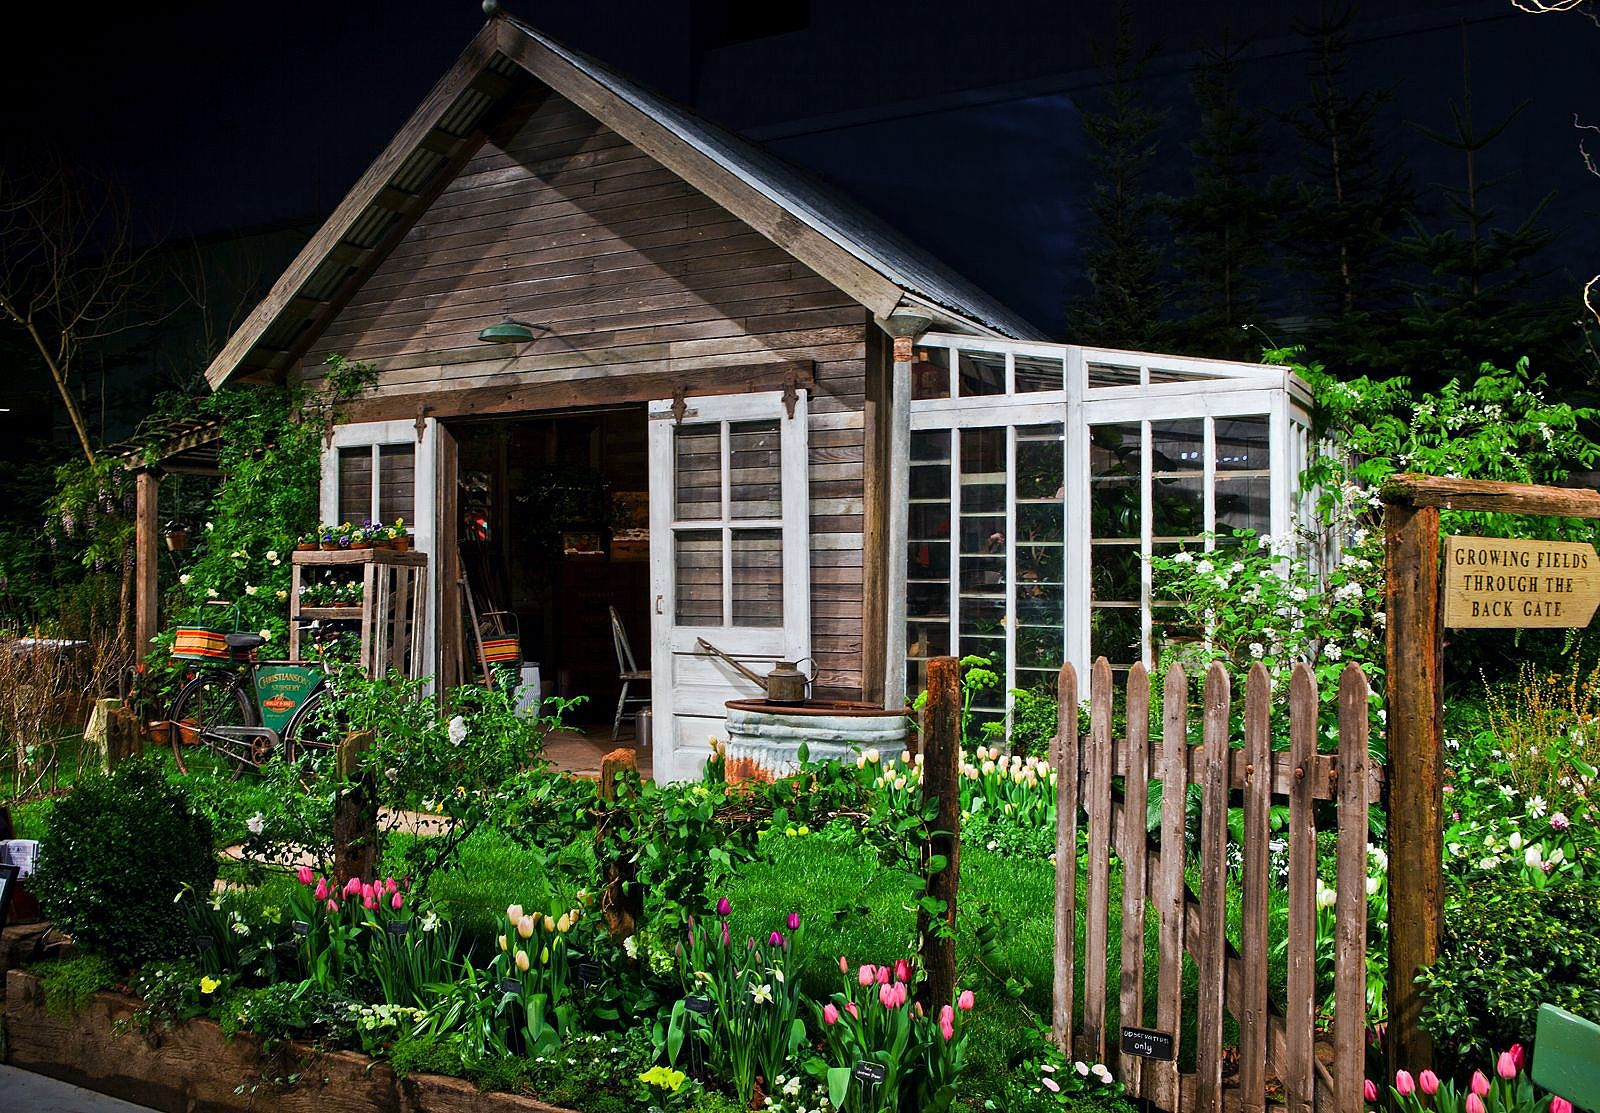 17 Best images about Cute Studio Sheds on Pinterest Gardens